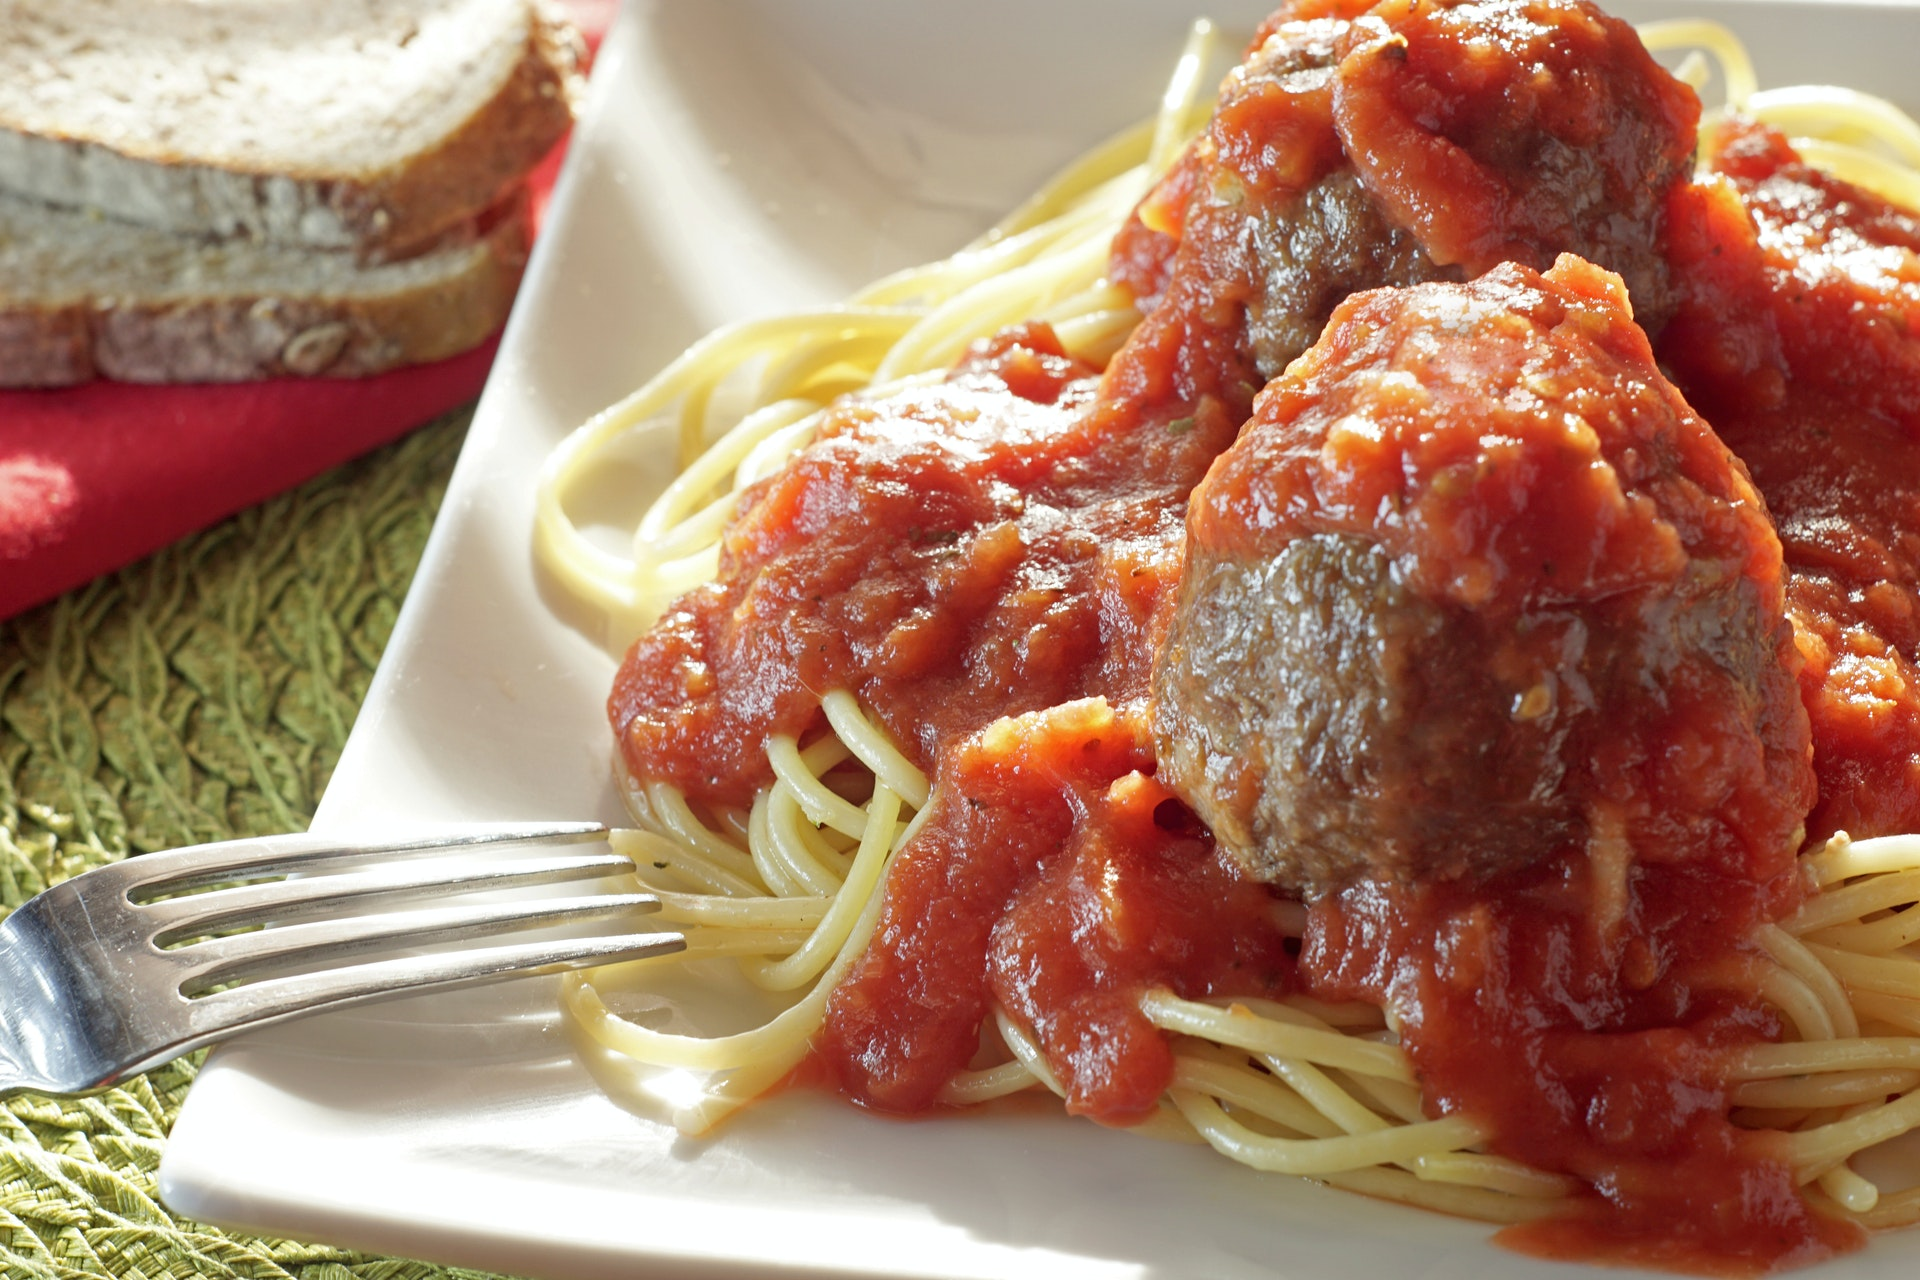 Easy Homemade Spaghetti and Baked Meatballs Recipe